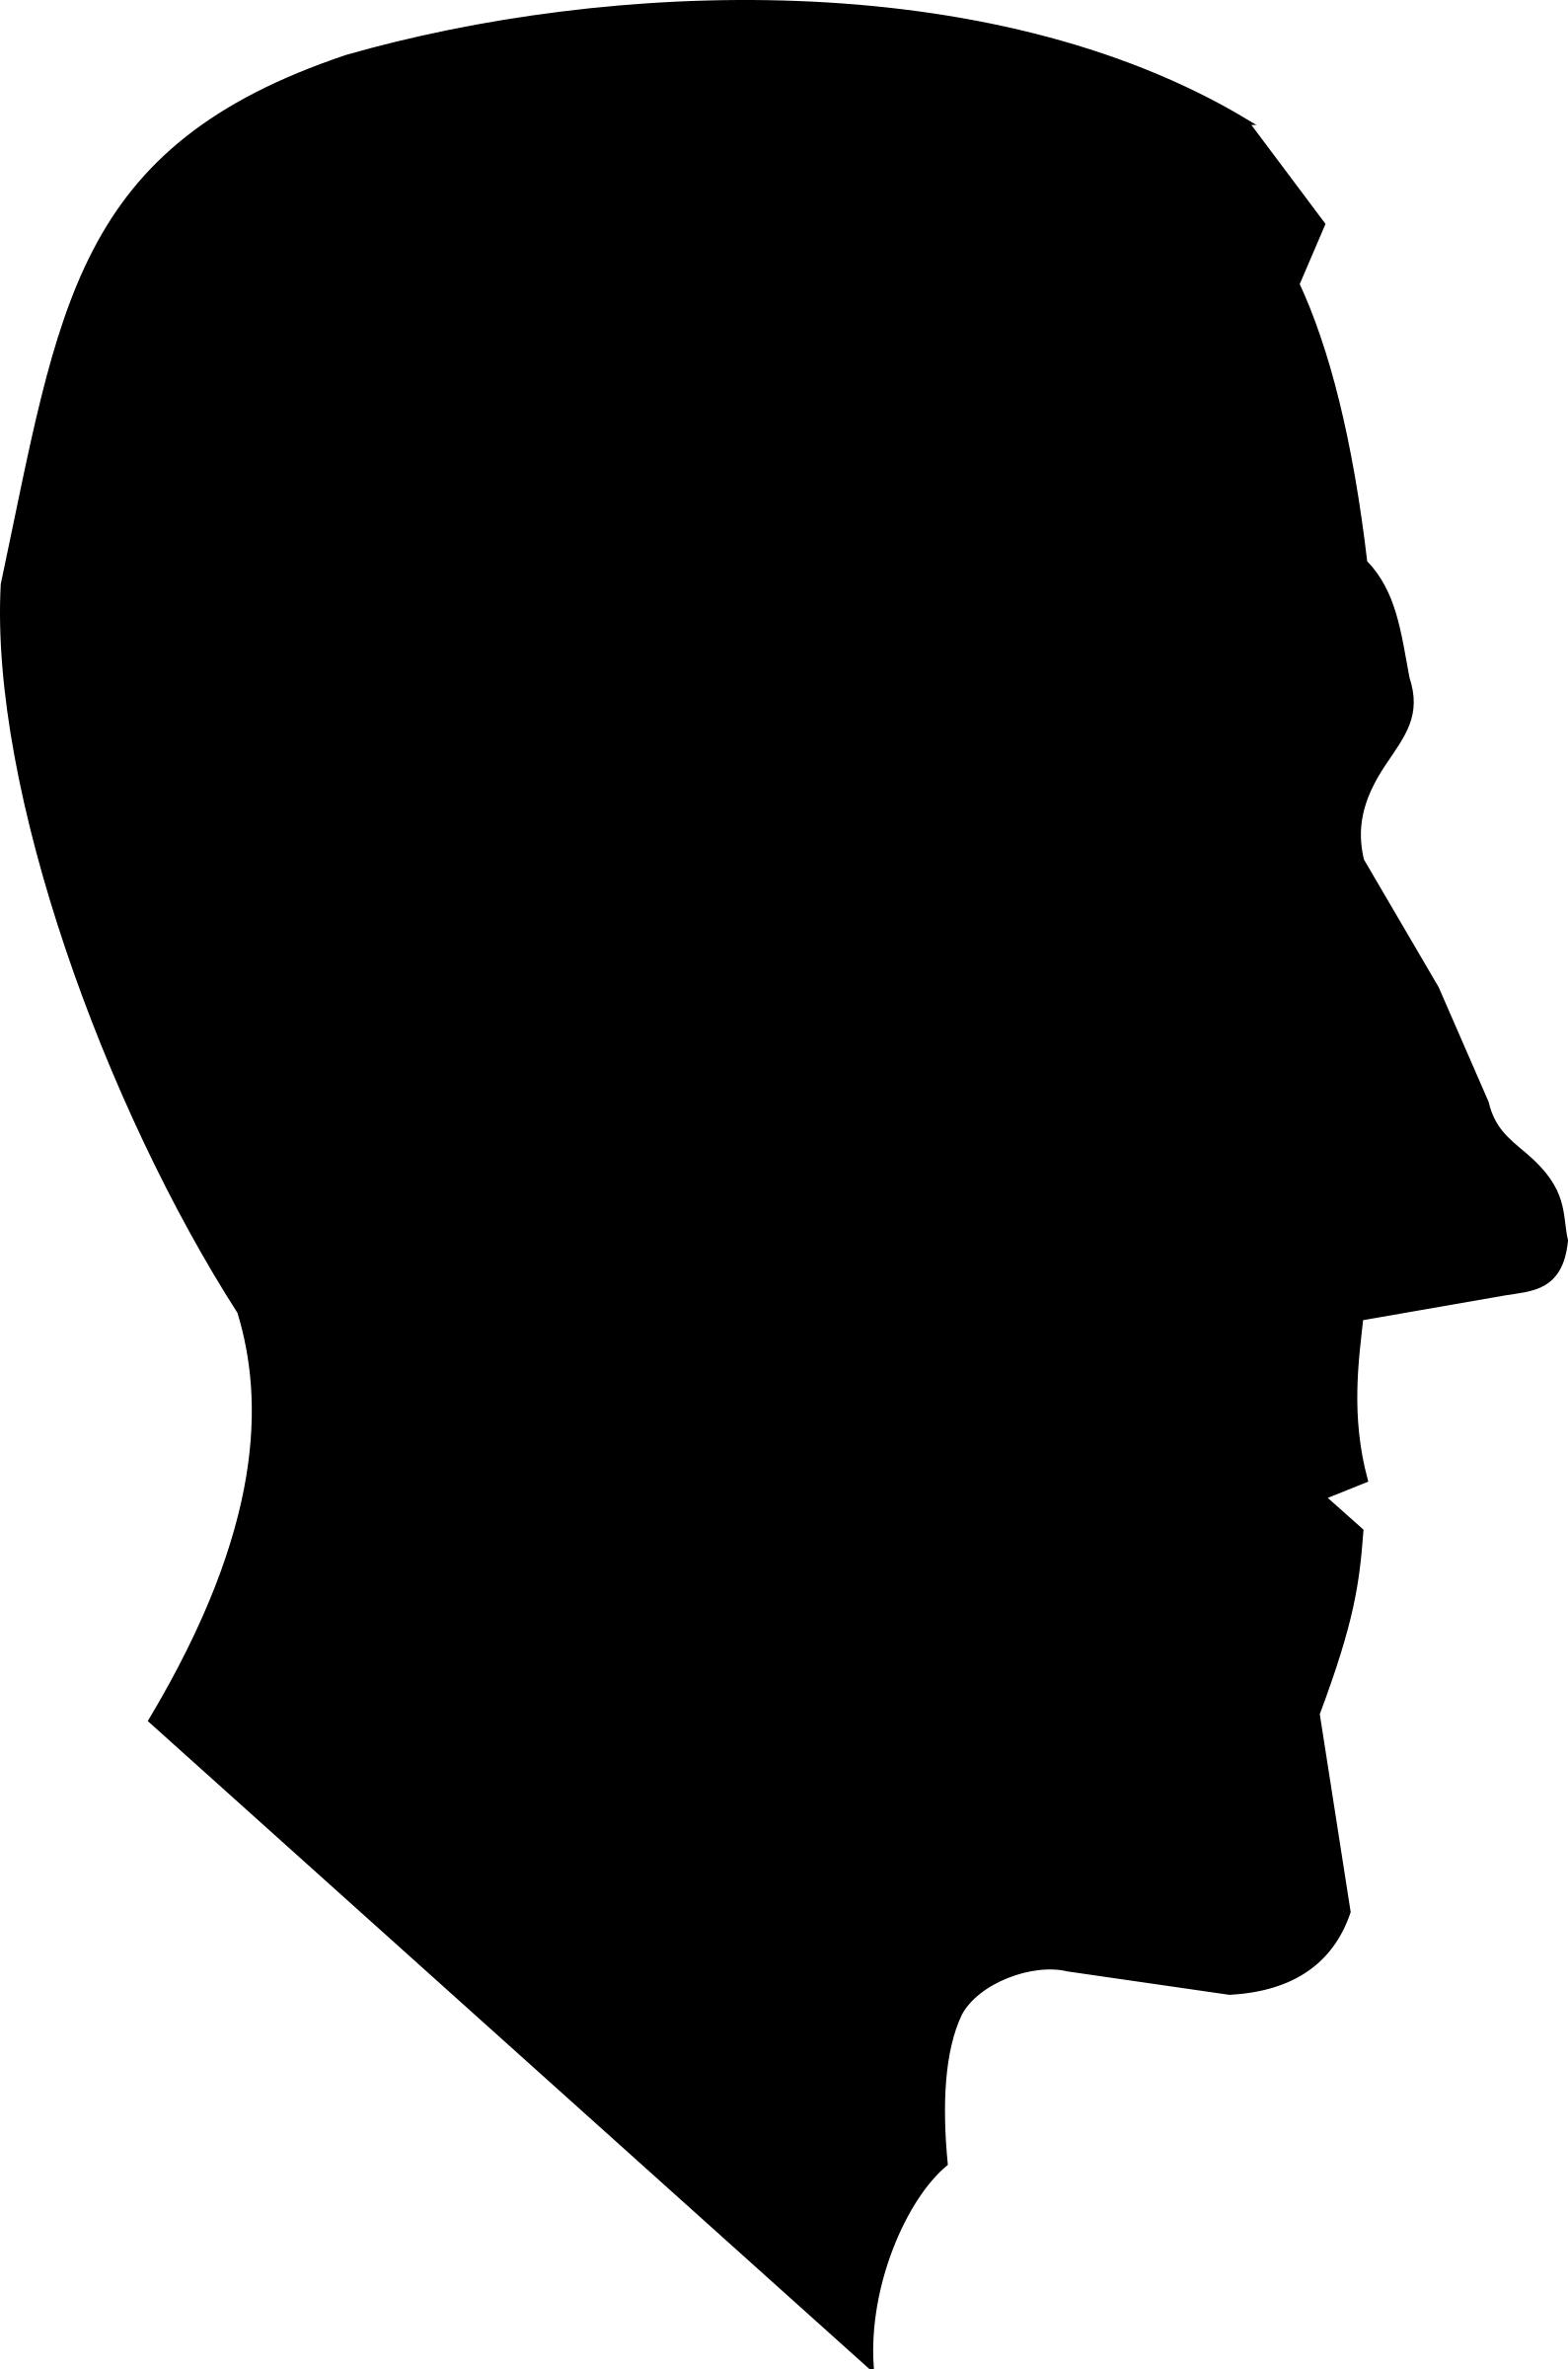 1589x2400 H. P. Lovecraft Profile Silhouette Icons Png